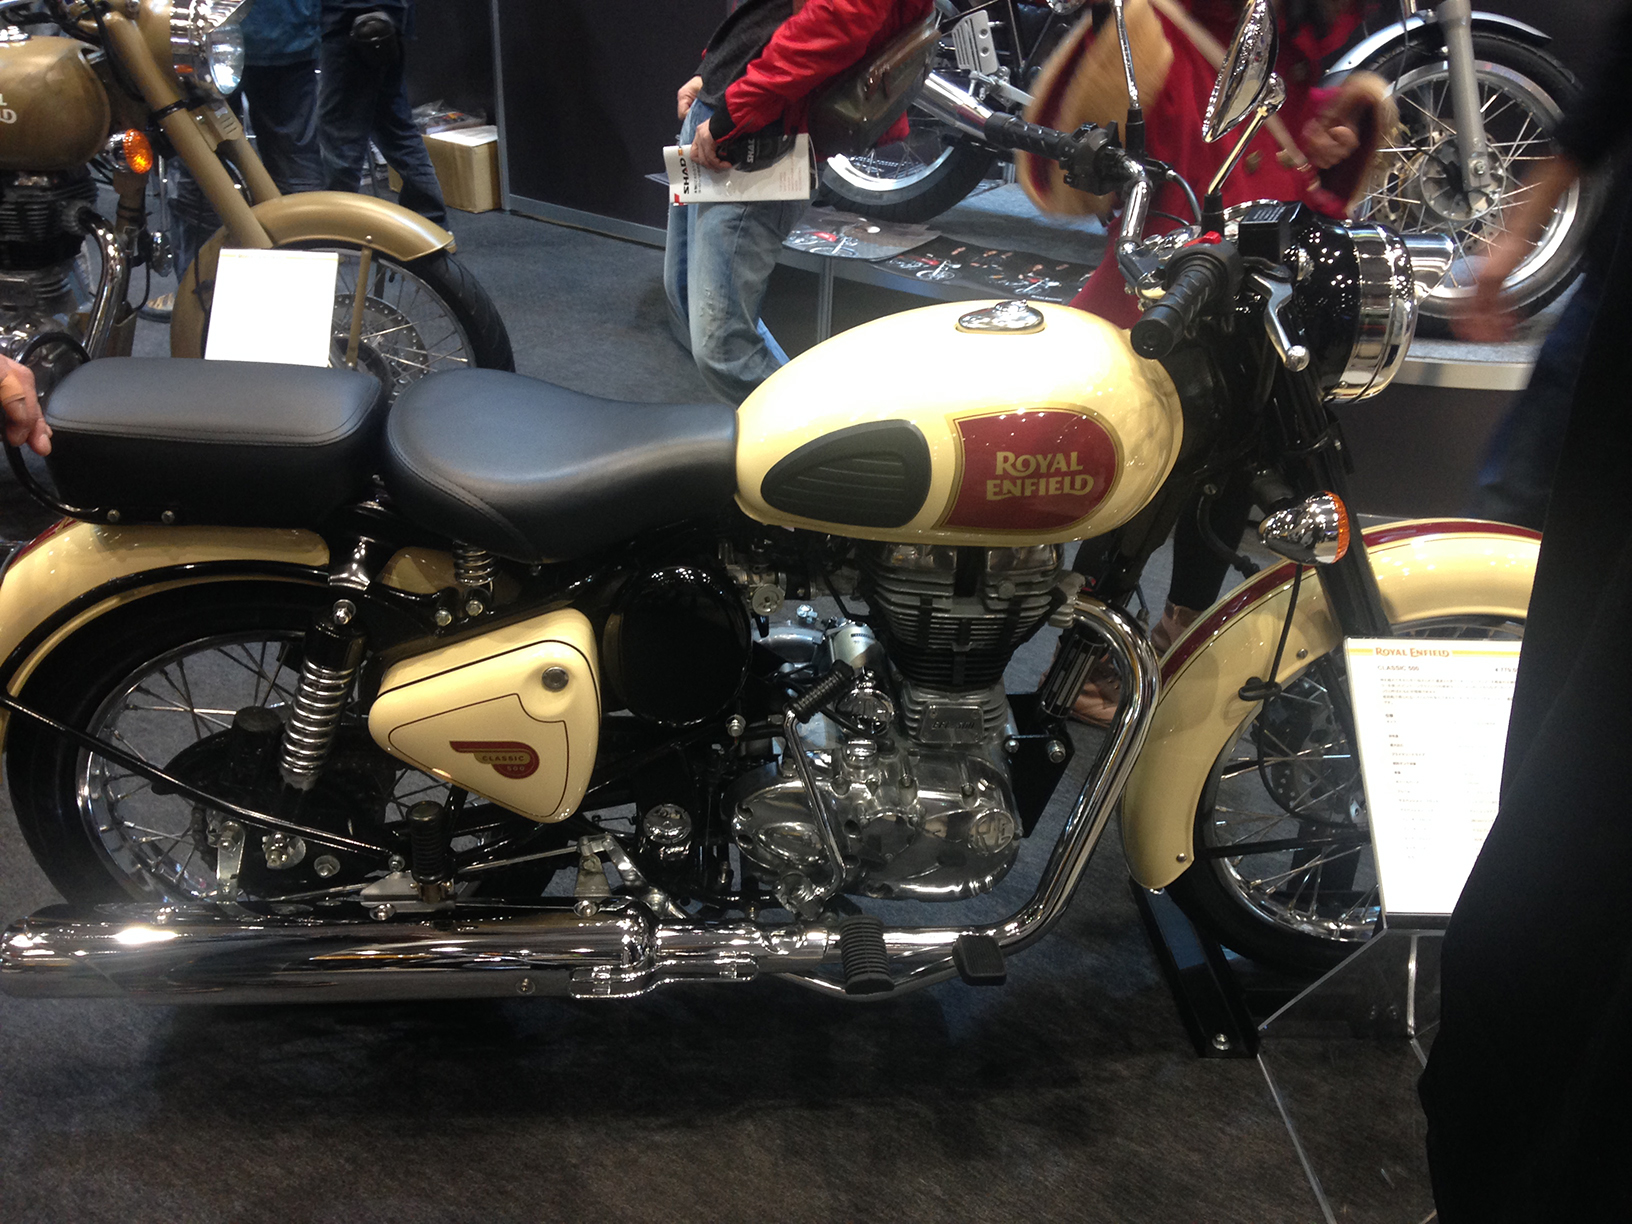 Royal Enfield- classy classic